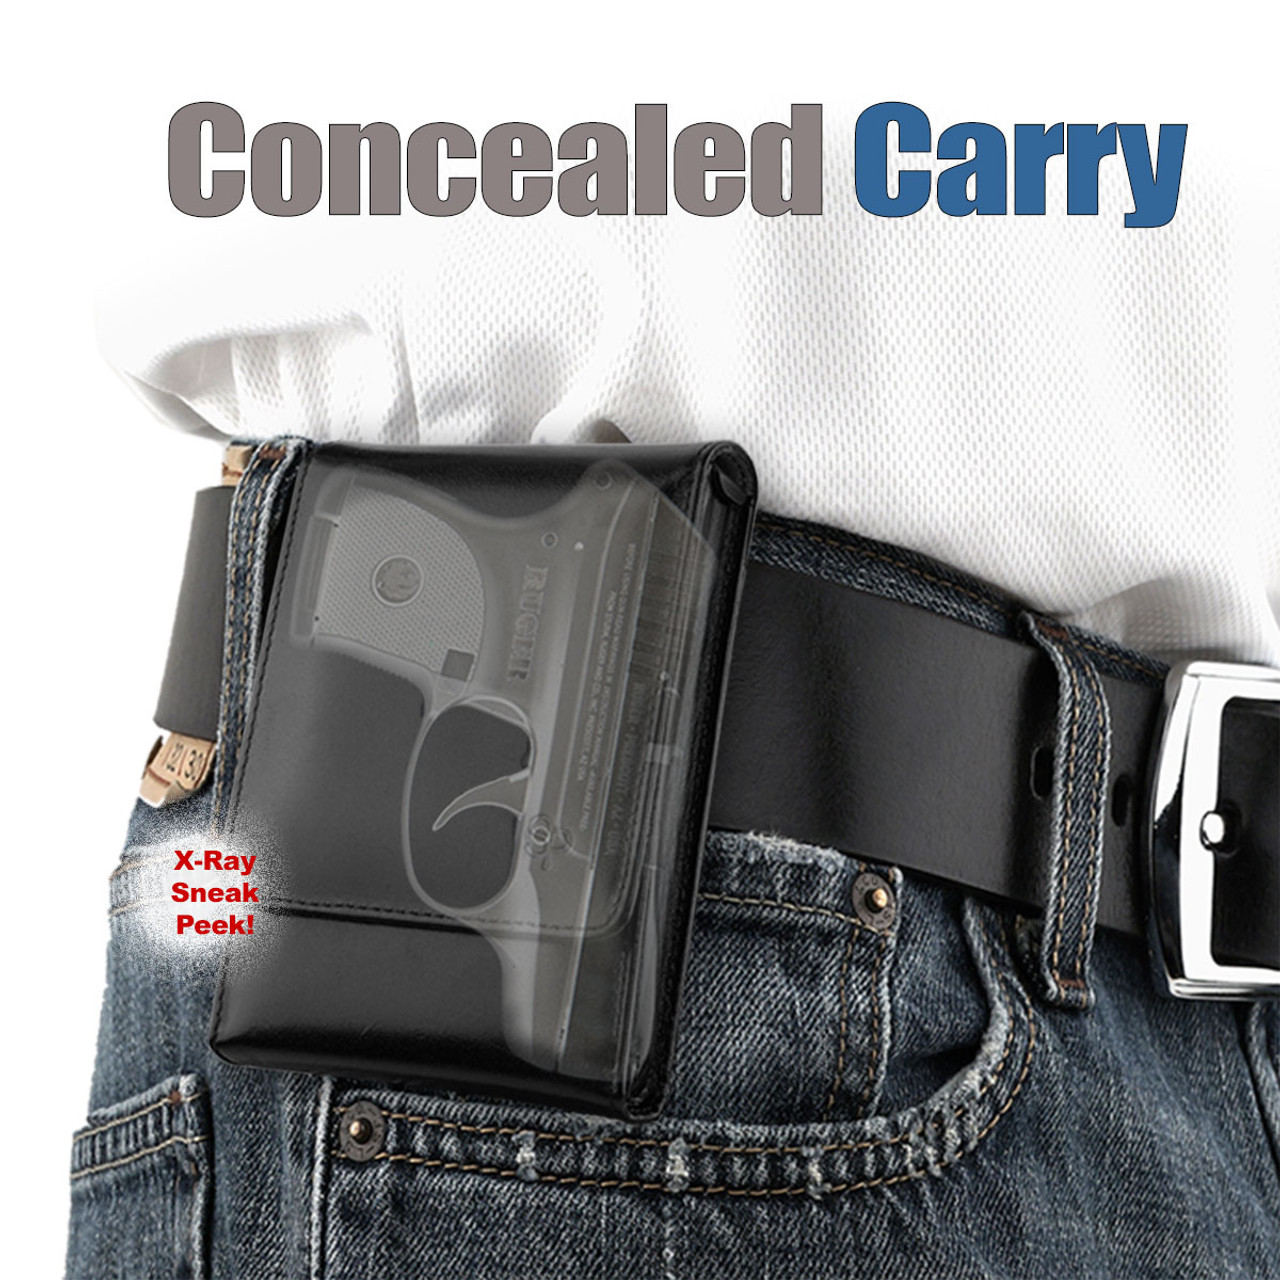 Colt Mark IV Series 80 (.380) Concealed Carry Holster (Belt Loop)